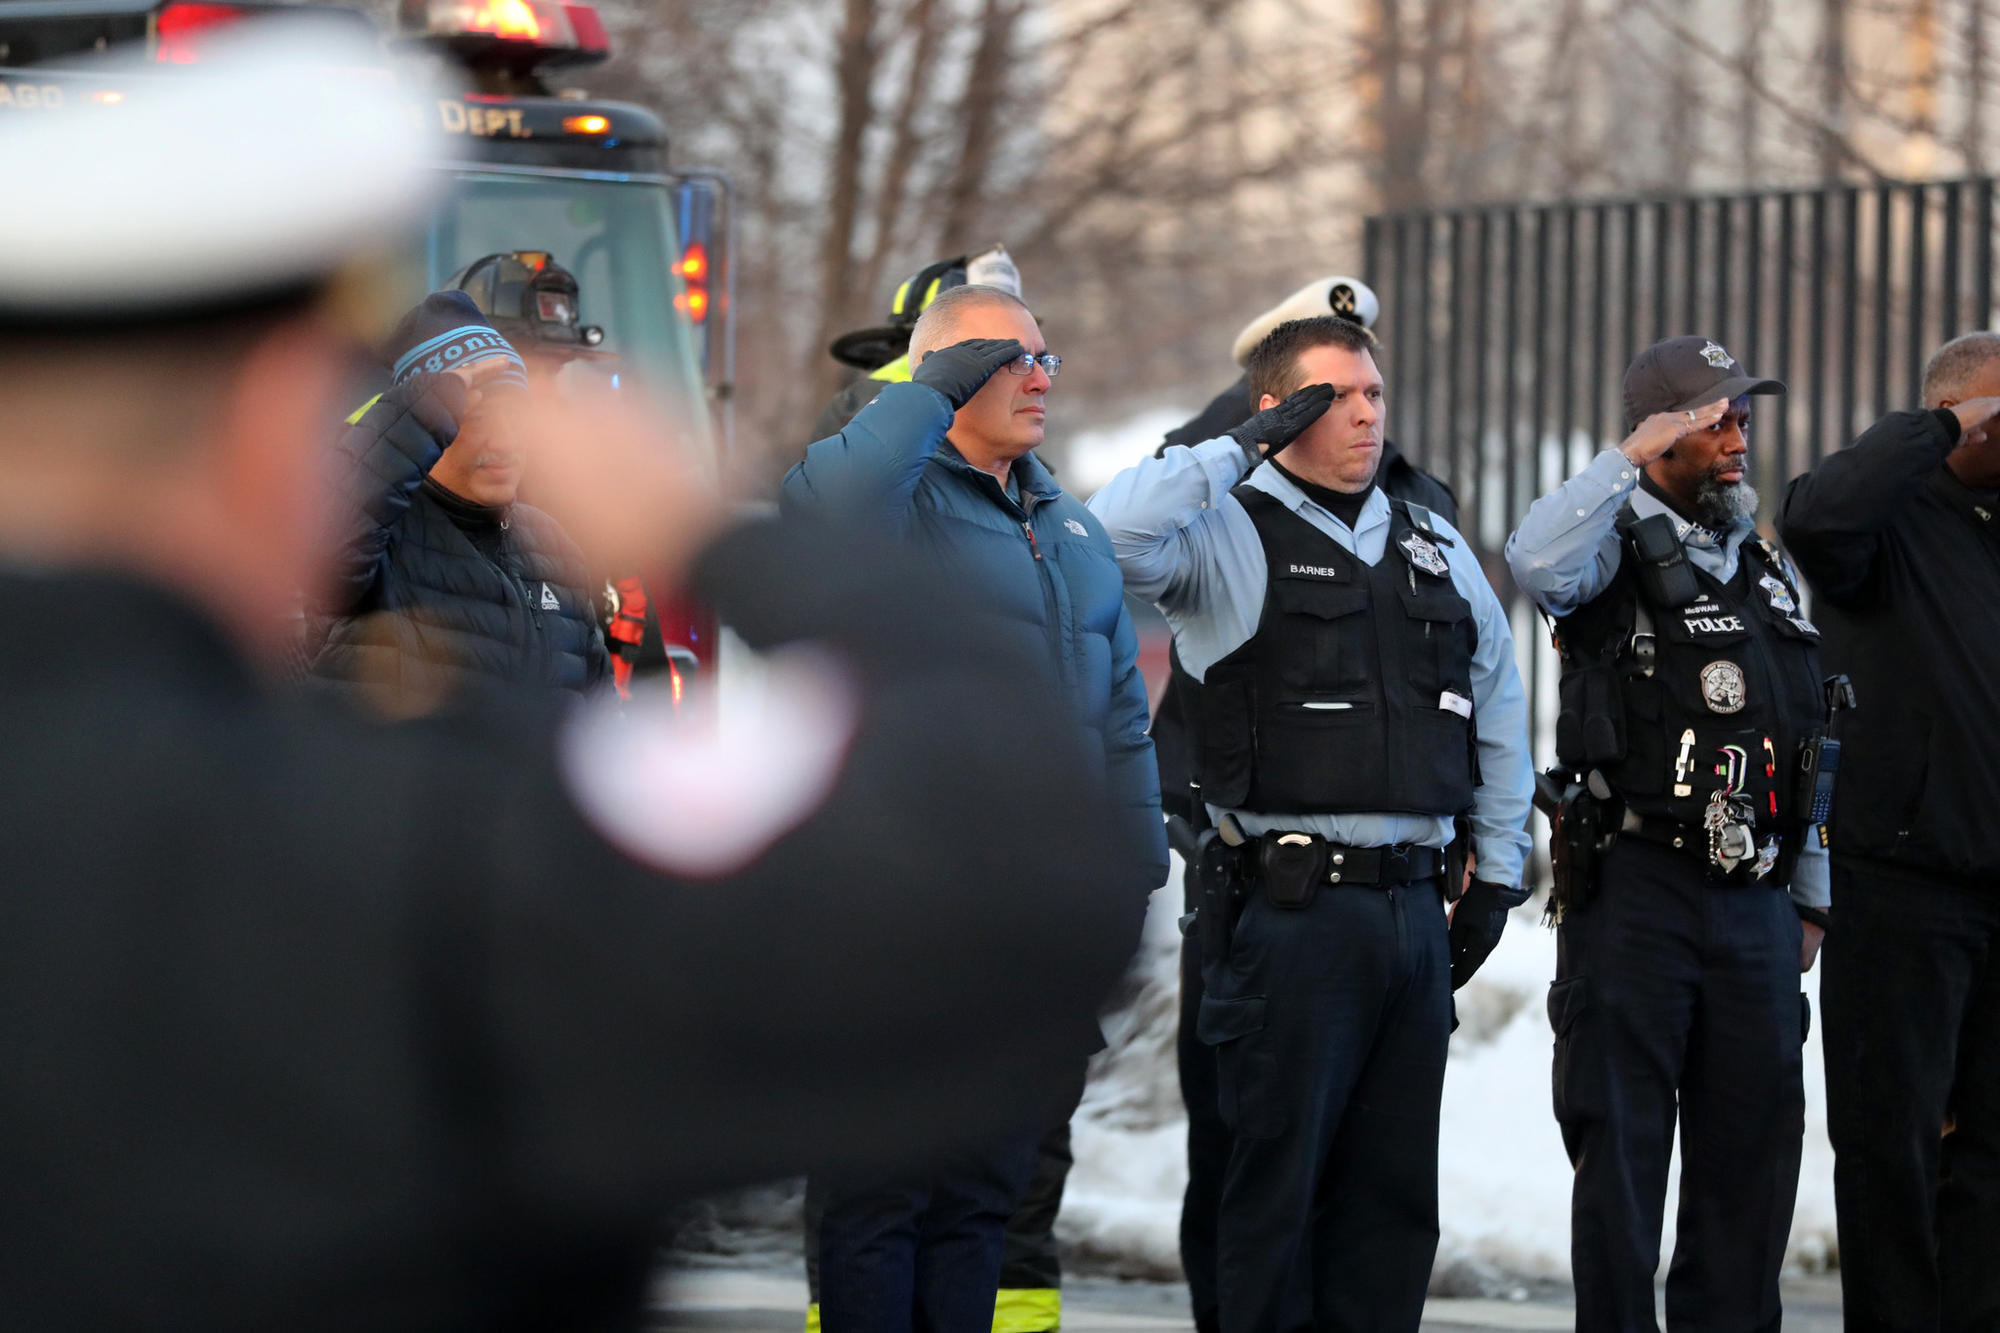 Police commander is killed in a city of pain